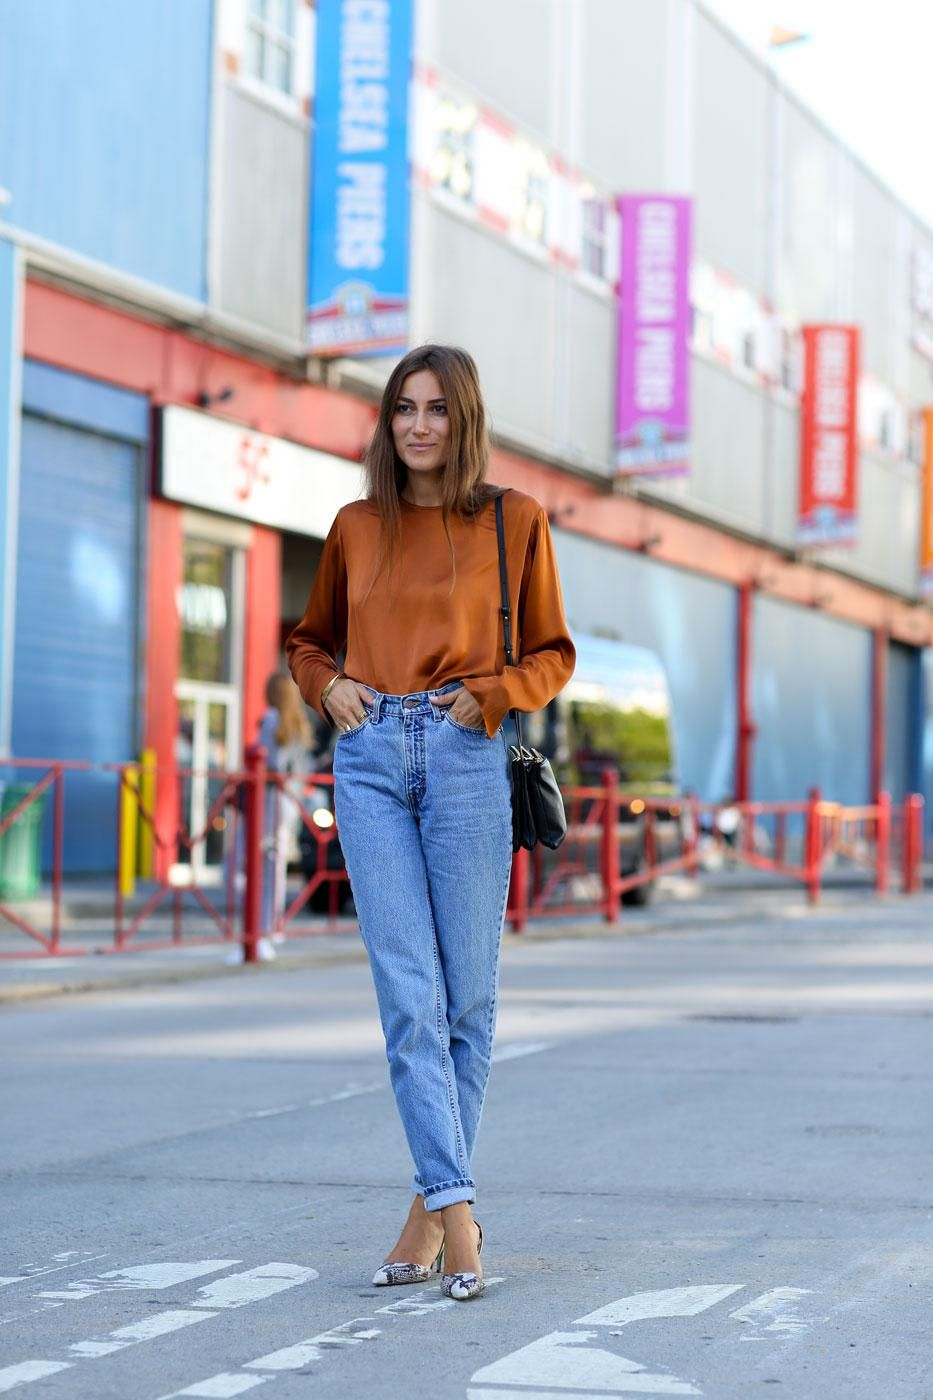 d4643e55c7 The 12 Most Popular Italian Street-Style Stars to Know - Giorgia Tordini  wearing high-waist mom jeans and a burnt orange silk top